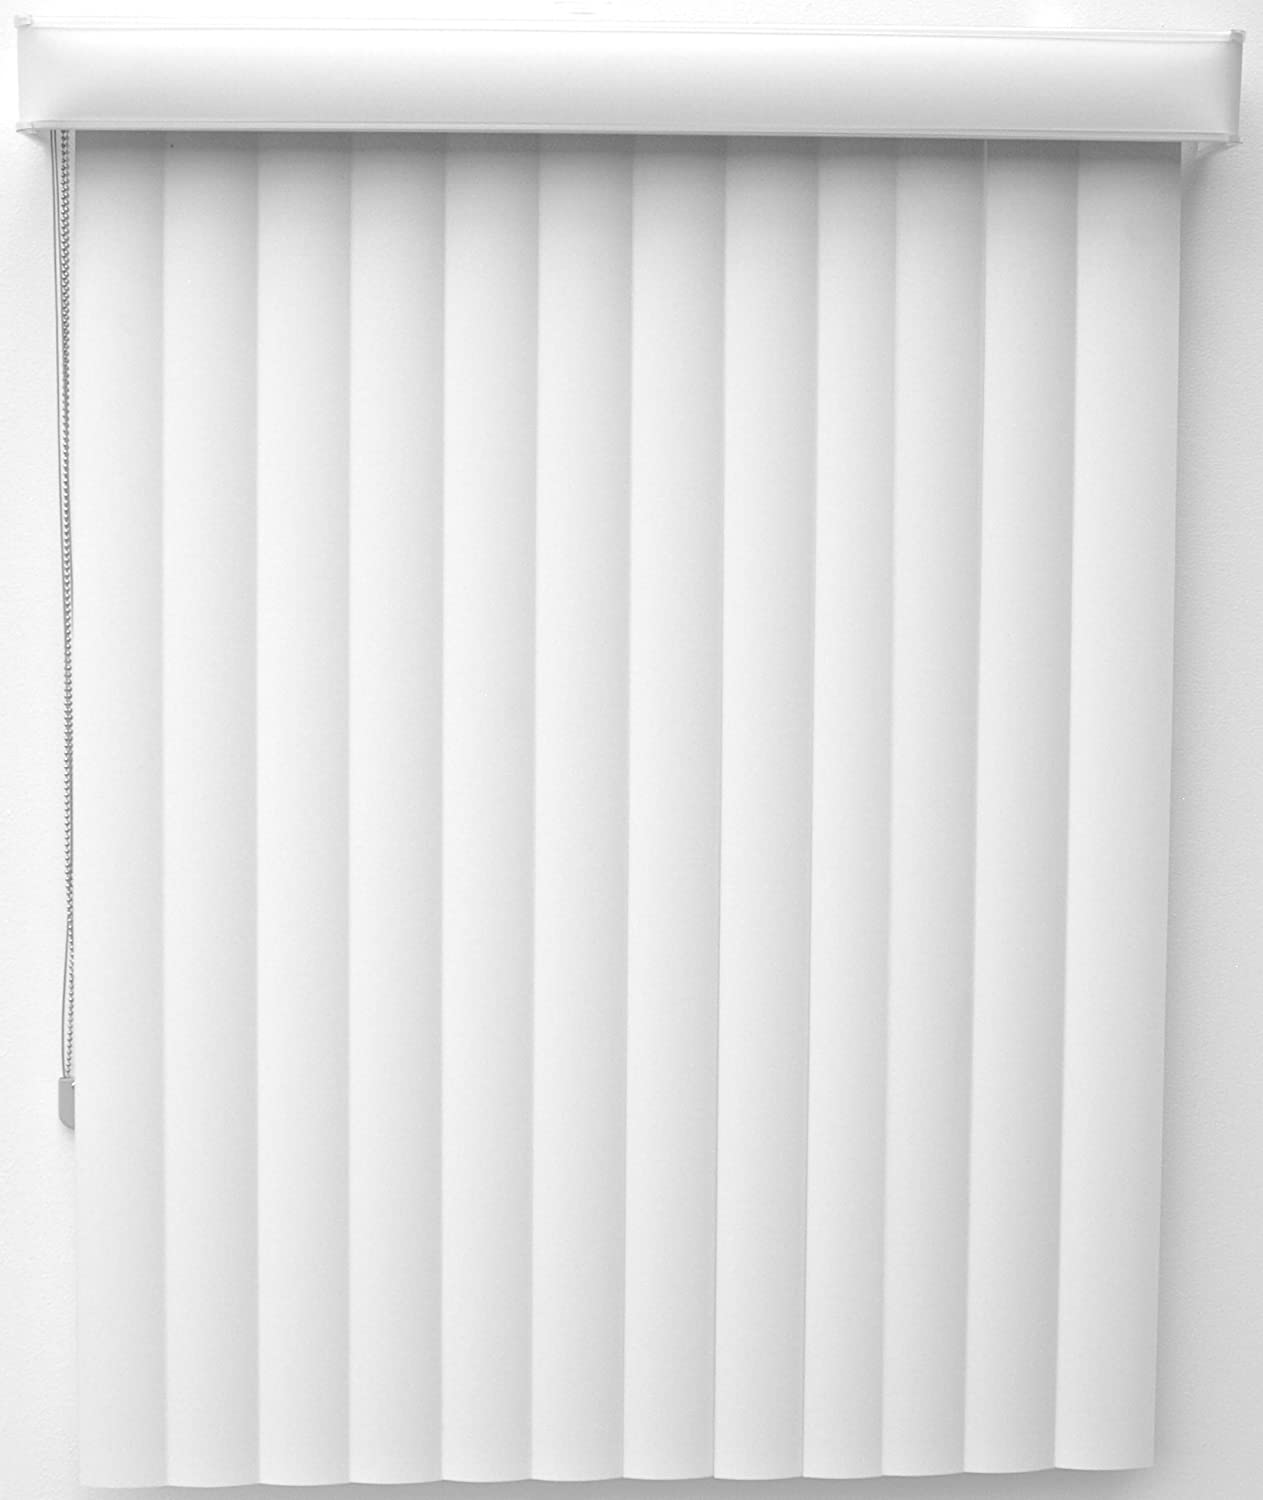 New Age Blinds Curved Vertical Blinds, One Way Opening, Outside Mount, 96 by 84-Inch, Polar